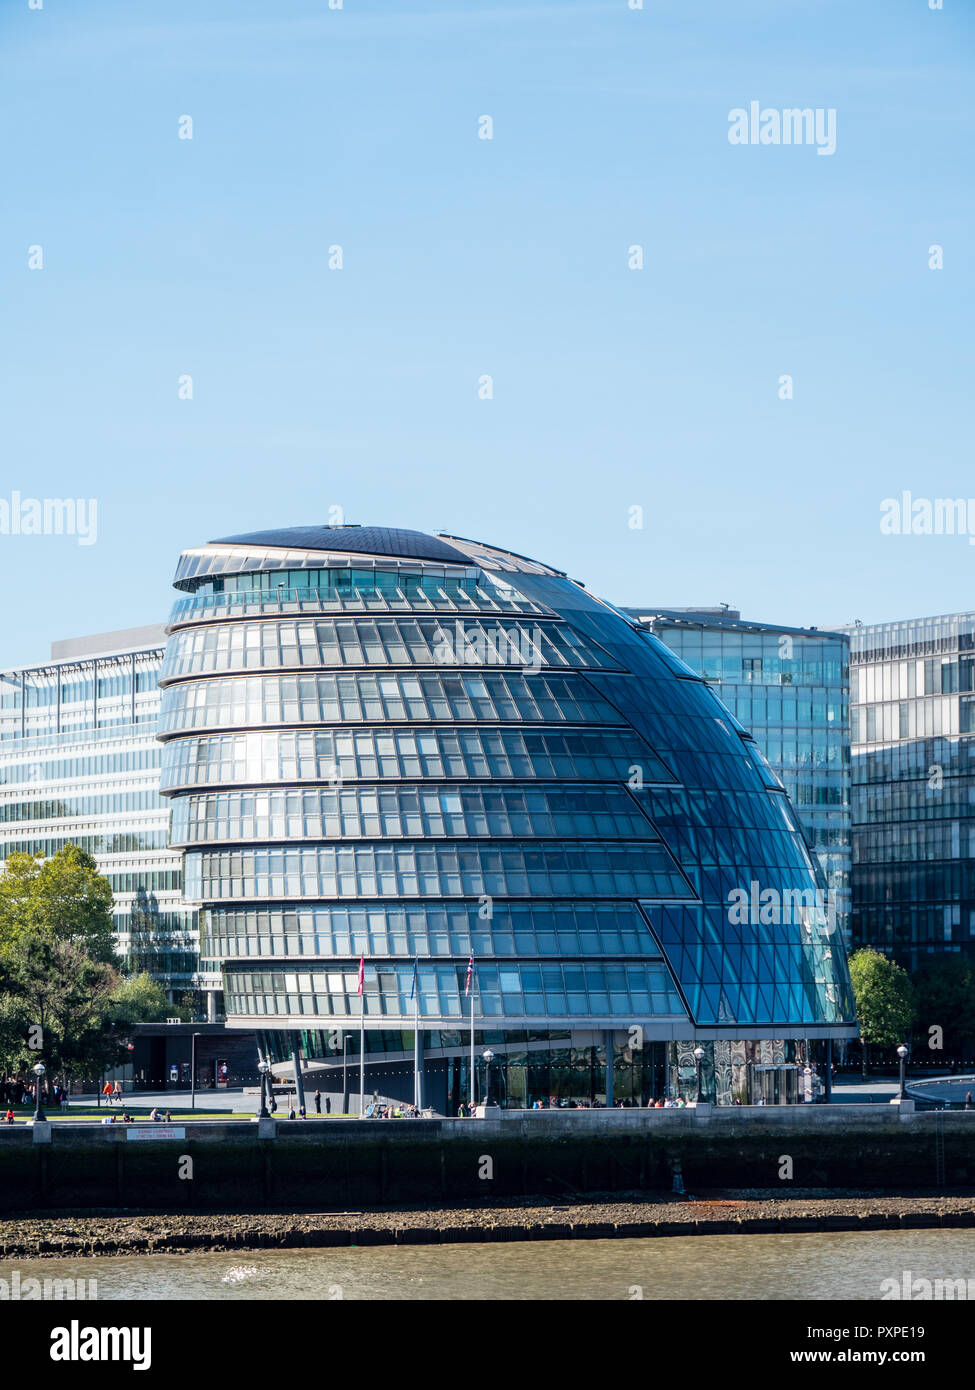 London Assembly, London City Hall, on the River Thames, South Bank, London, England, UK, GB. - Stock Image